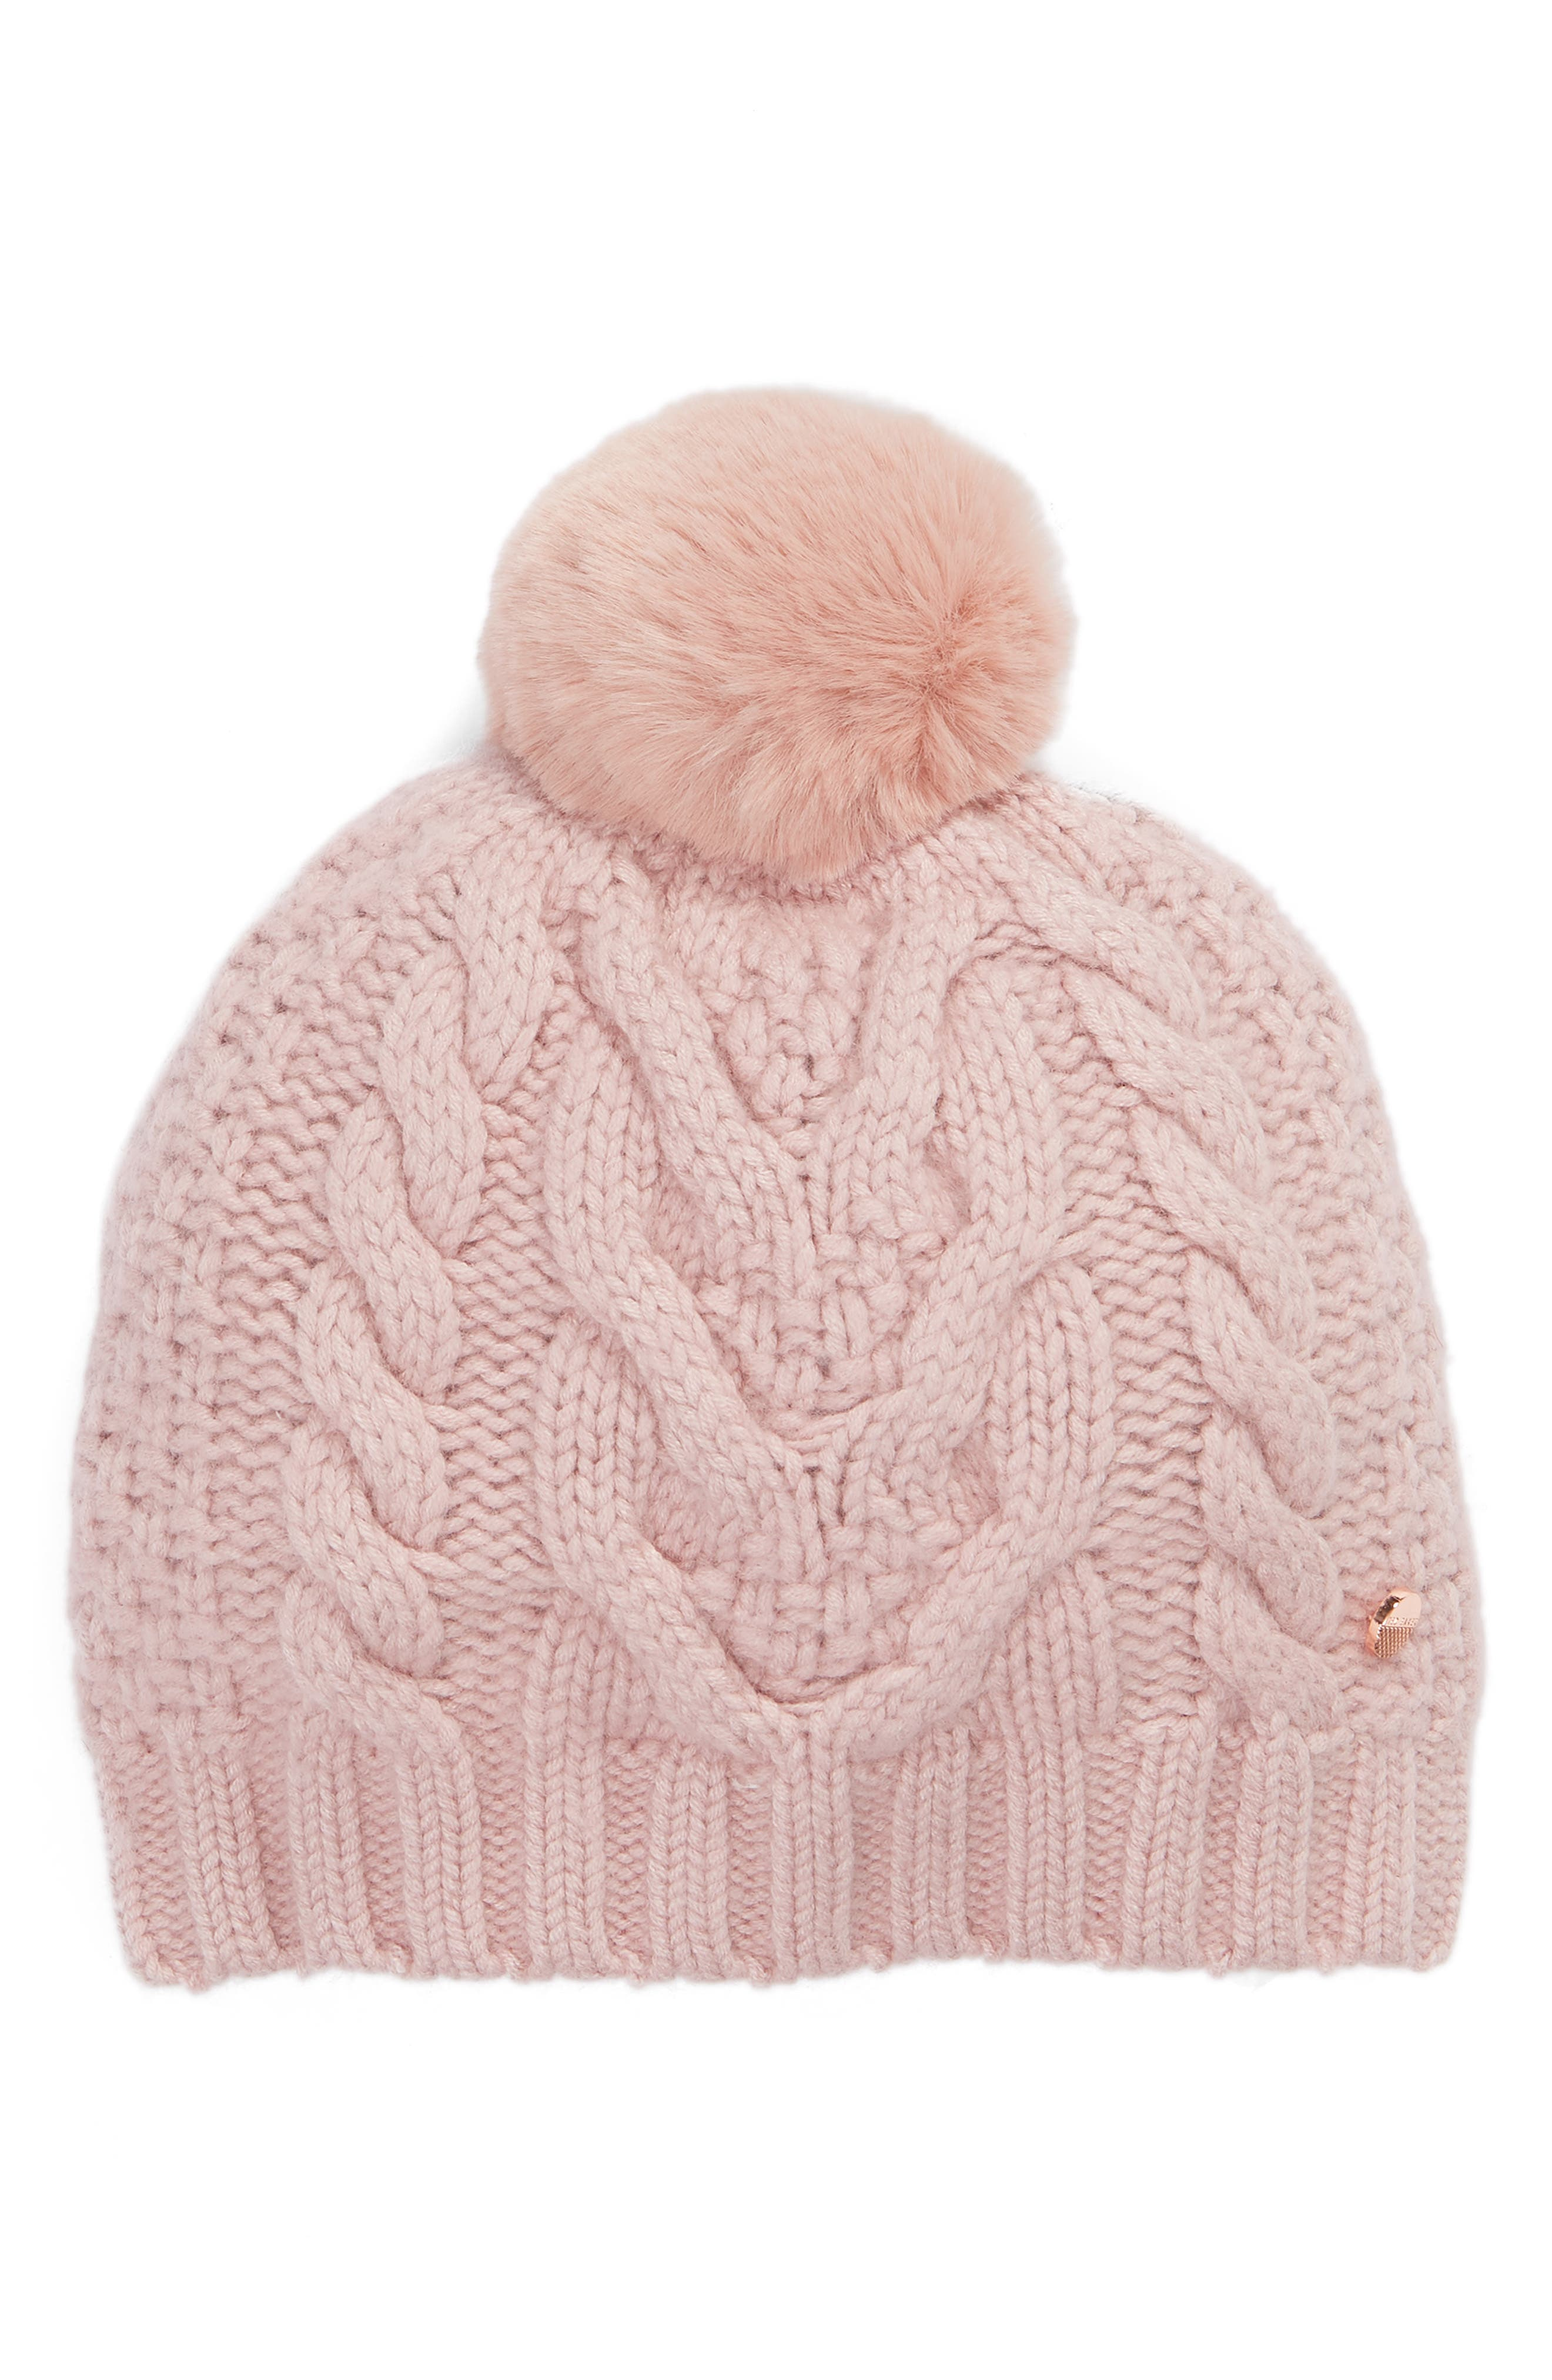 Quirsa Faux Fur Pom-Pom Cable-Knit Beanie in Pale Pink